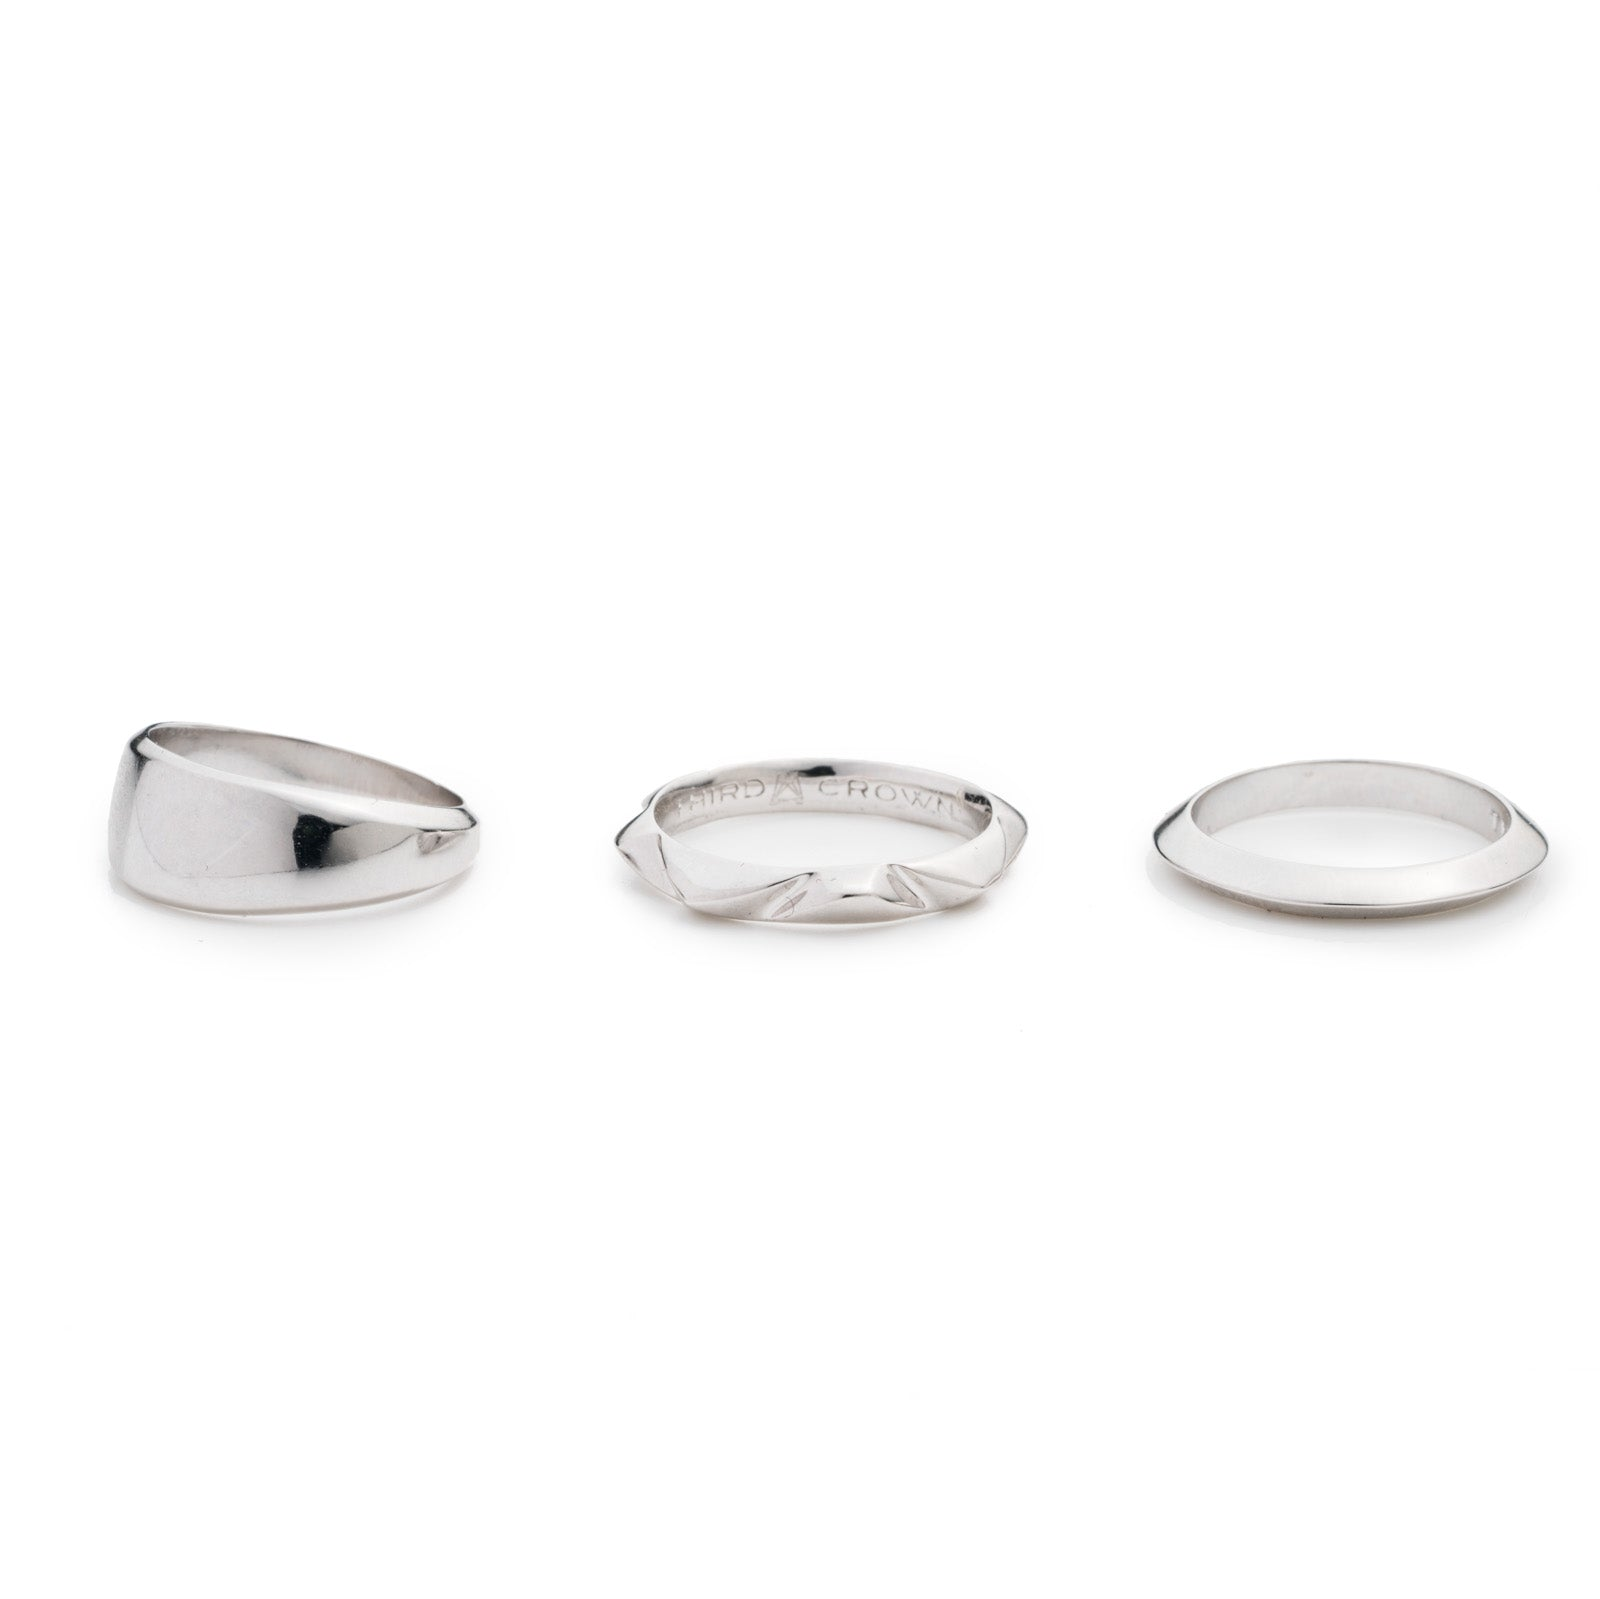 PRIZM RING SET - SILVER PLATED BRASS